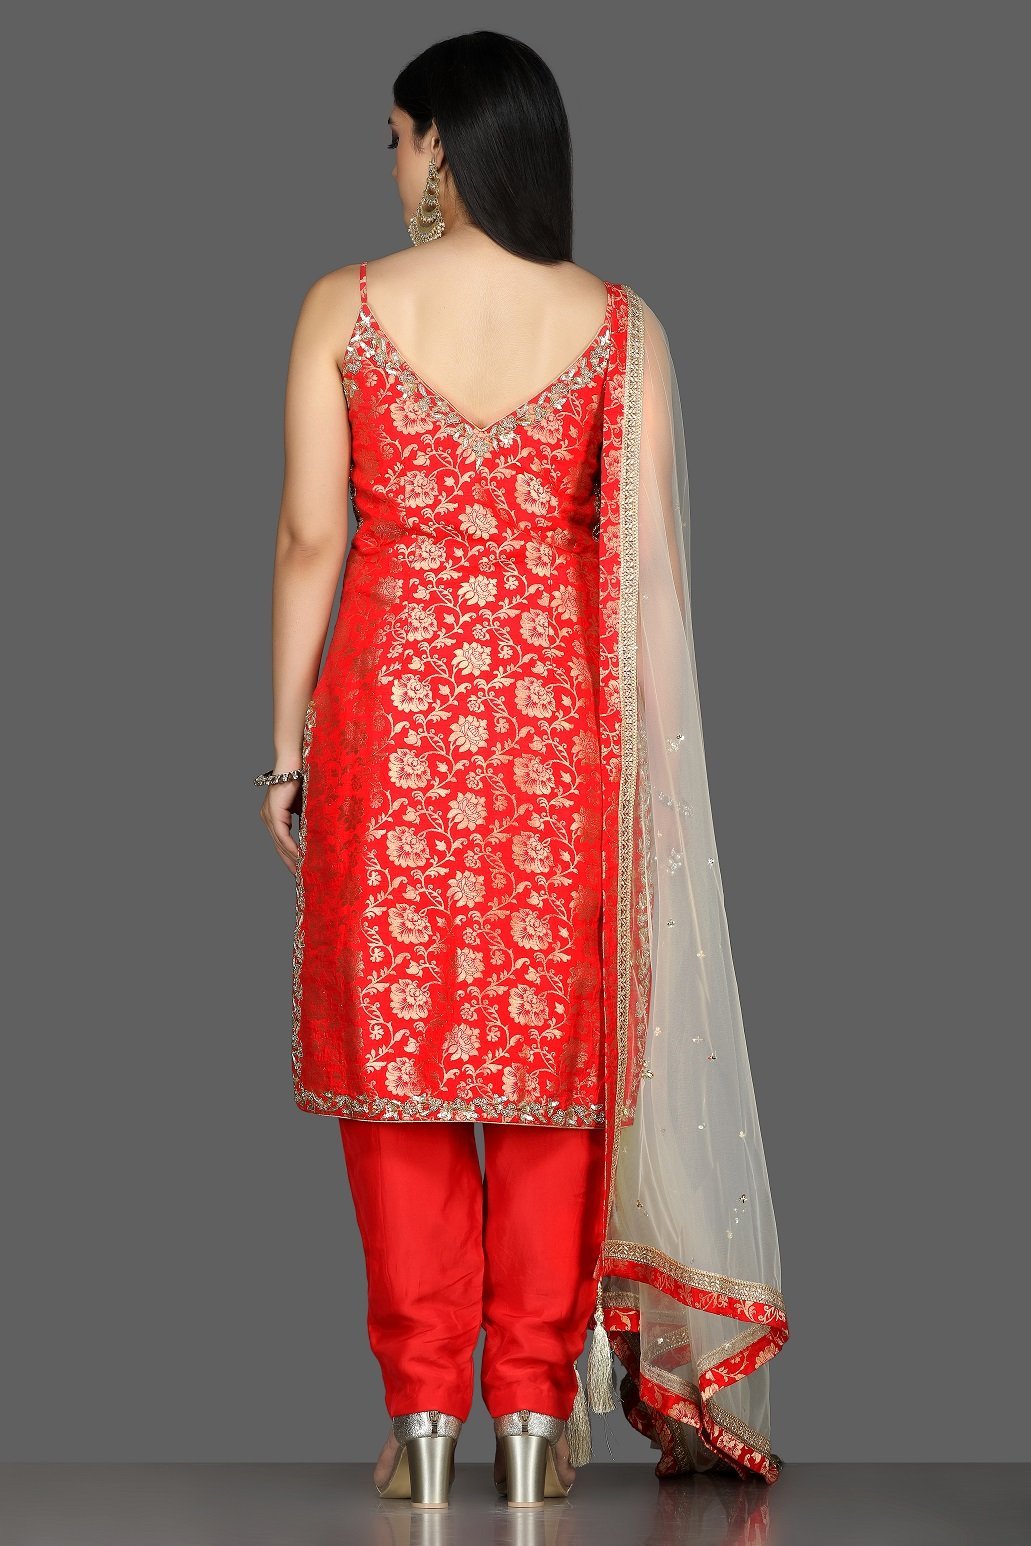 Buy bright red embroidered Banarasi kurta online in USA with crepe pants. Flaunt ethnic fashion with exquisite designer lehenga, Indian wedding dresses, Anarkali suits from Pure Elegance Indian fashion boutique in USA.-back